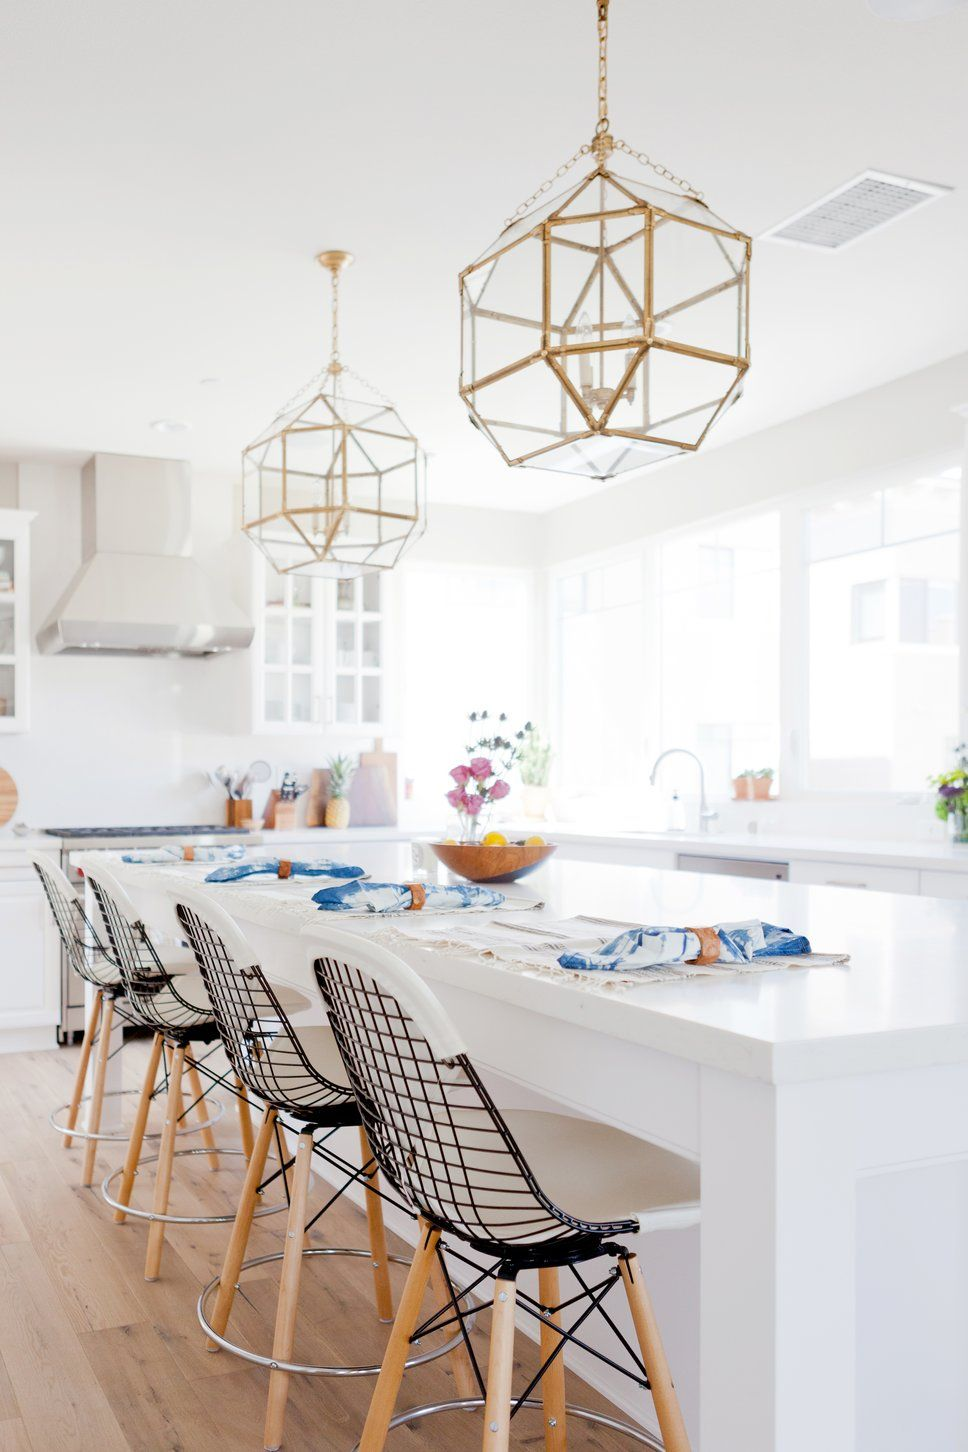 Shop The Look Modern Contemporary Kitchen Design By Natalie Myers In Playa Vista Residence